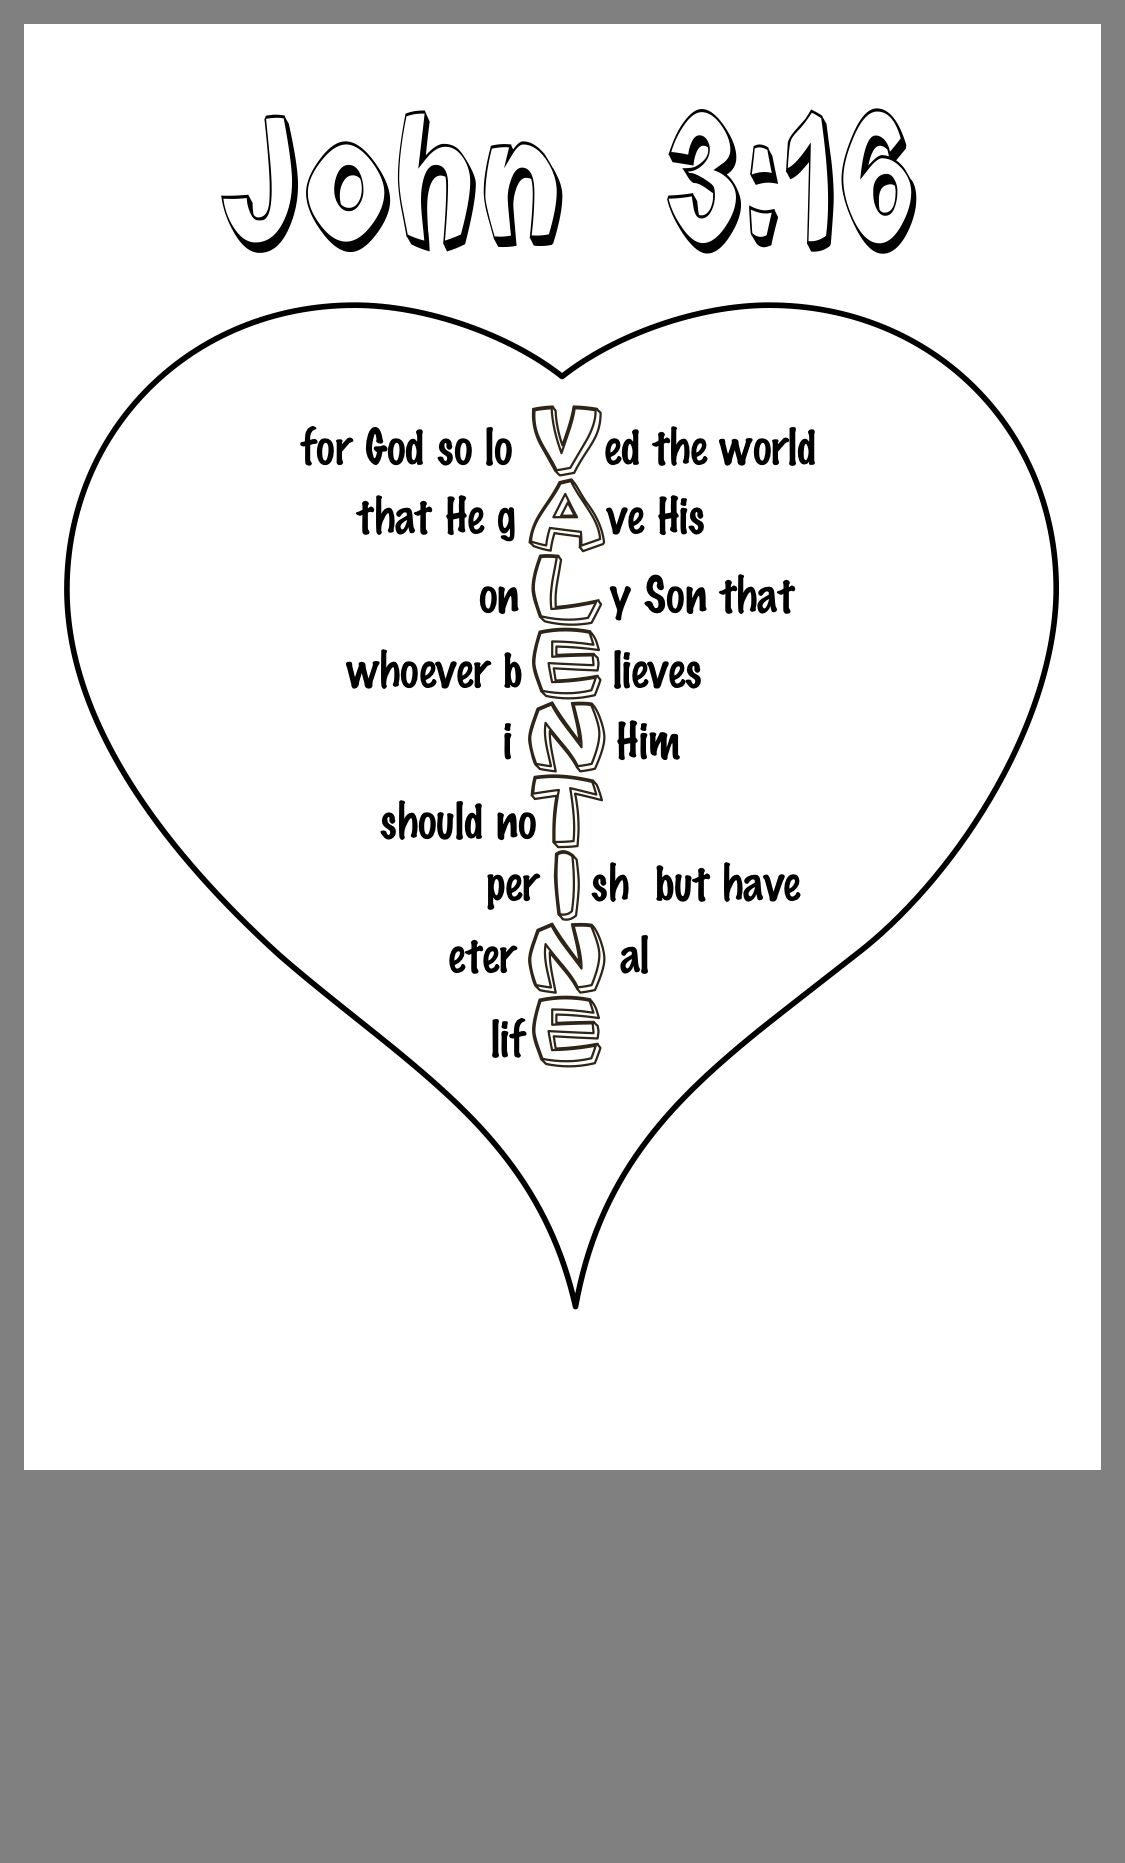 Pin by Amy White on Crafts Childrens church, John 316